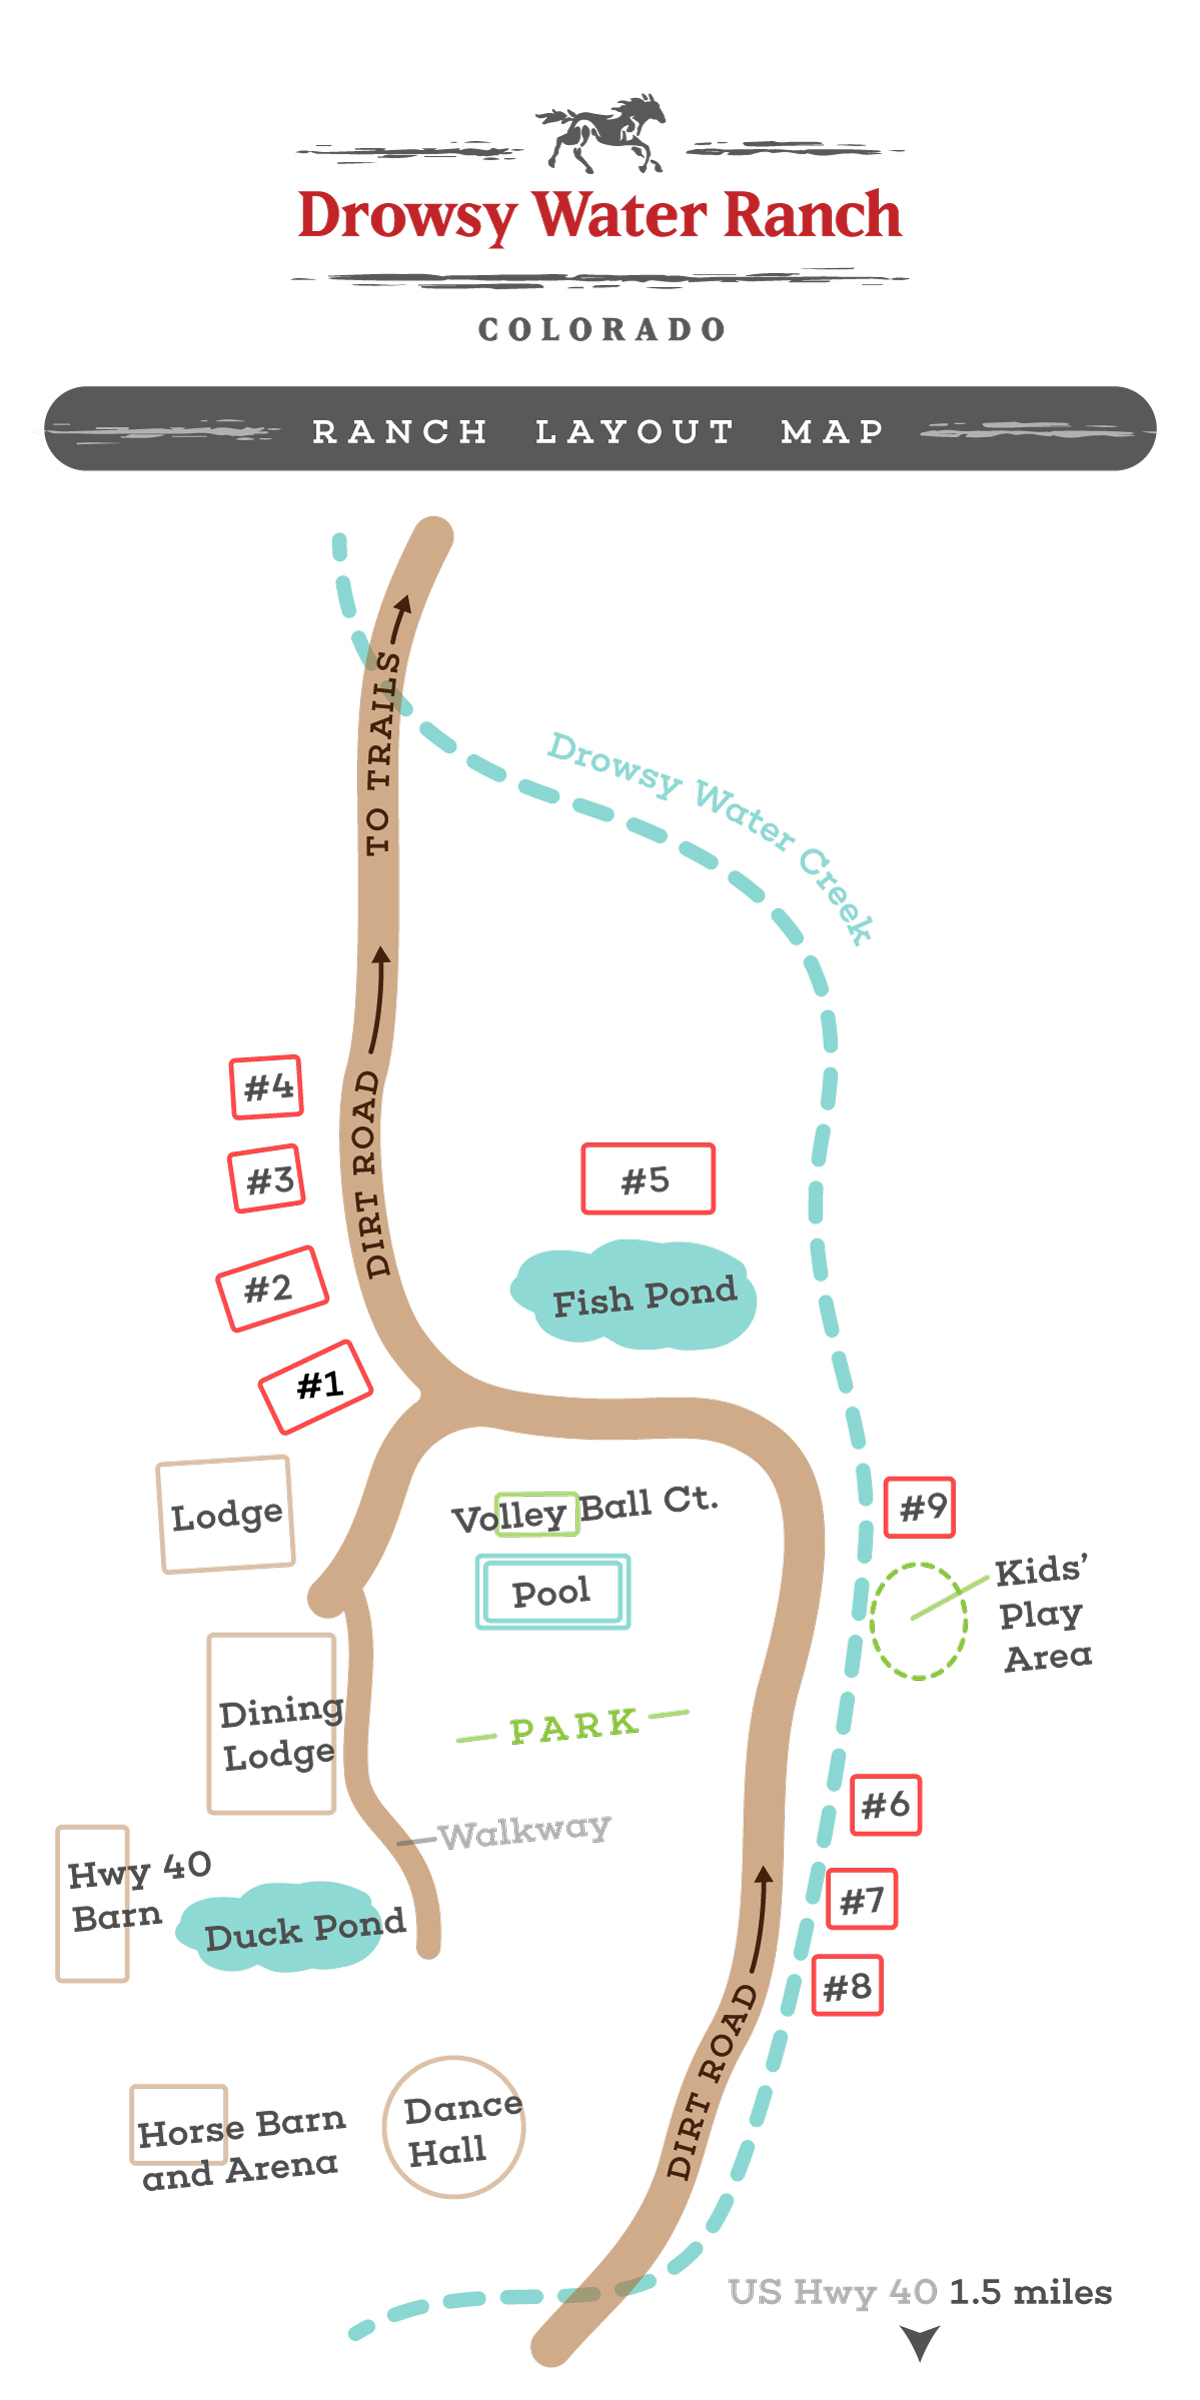 Drowsy Water Ranch Layout Map